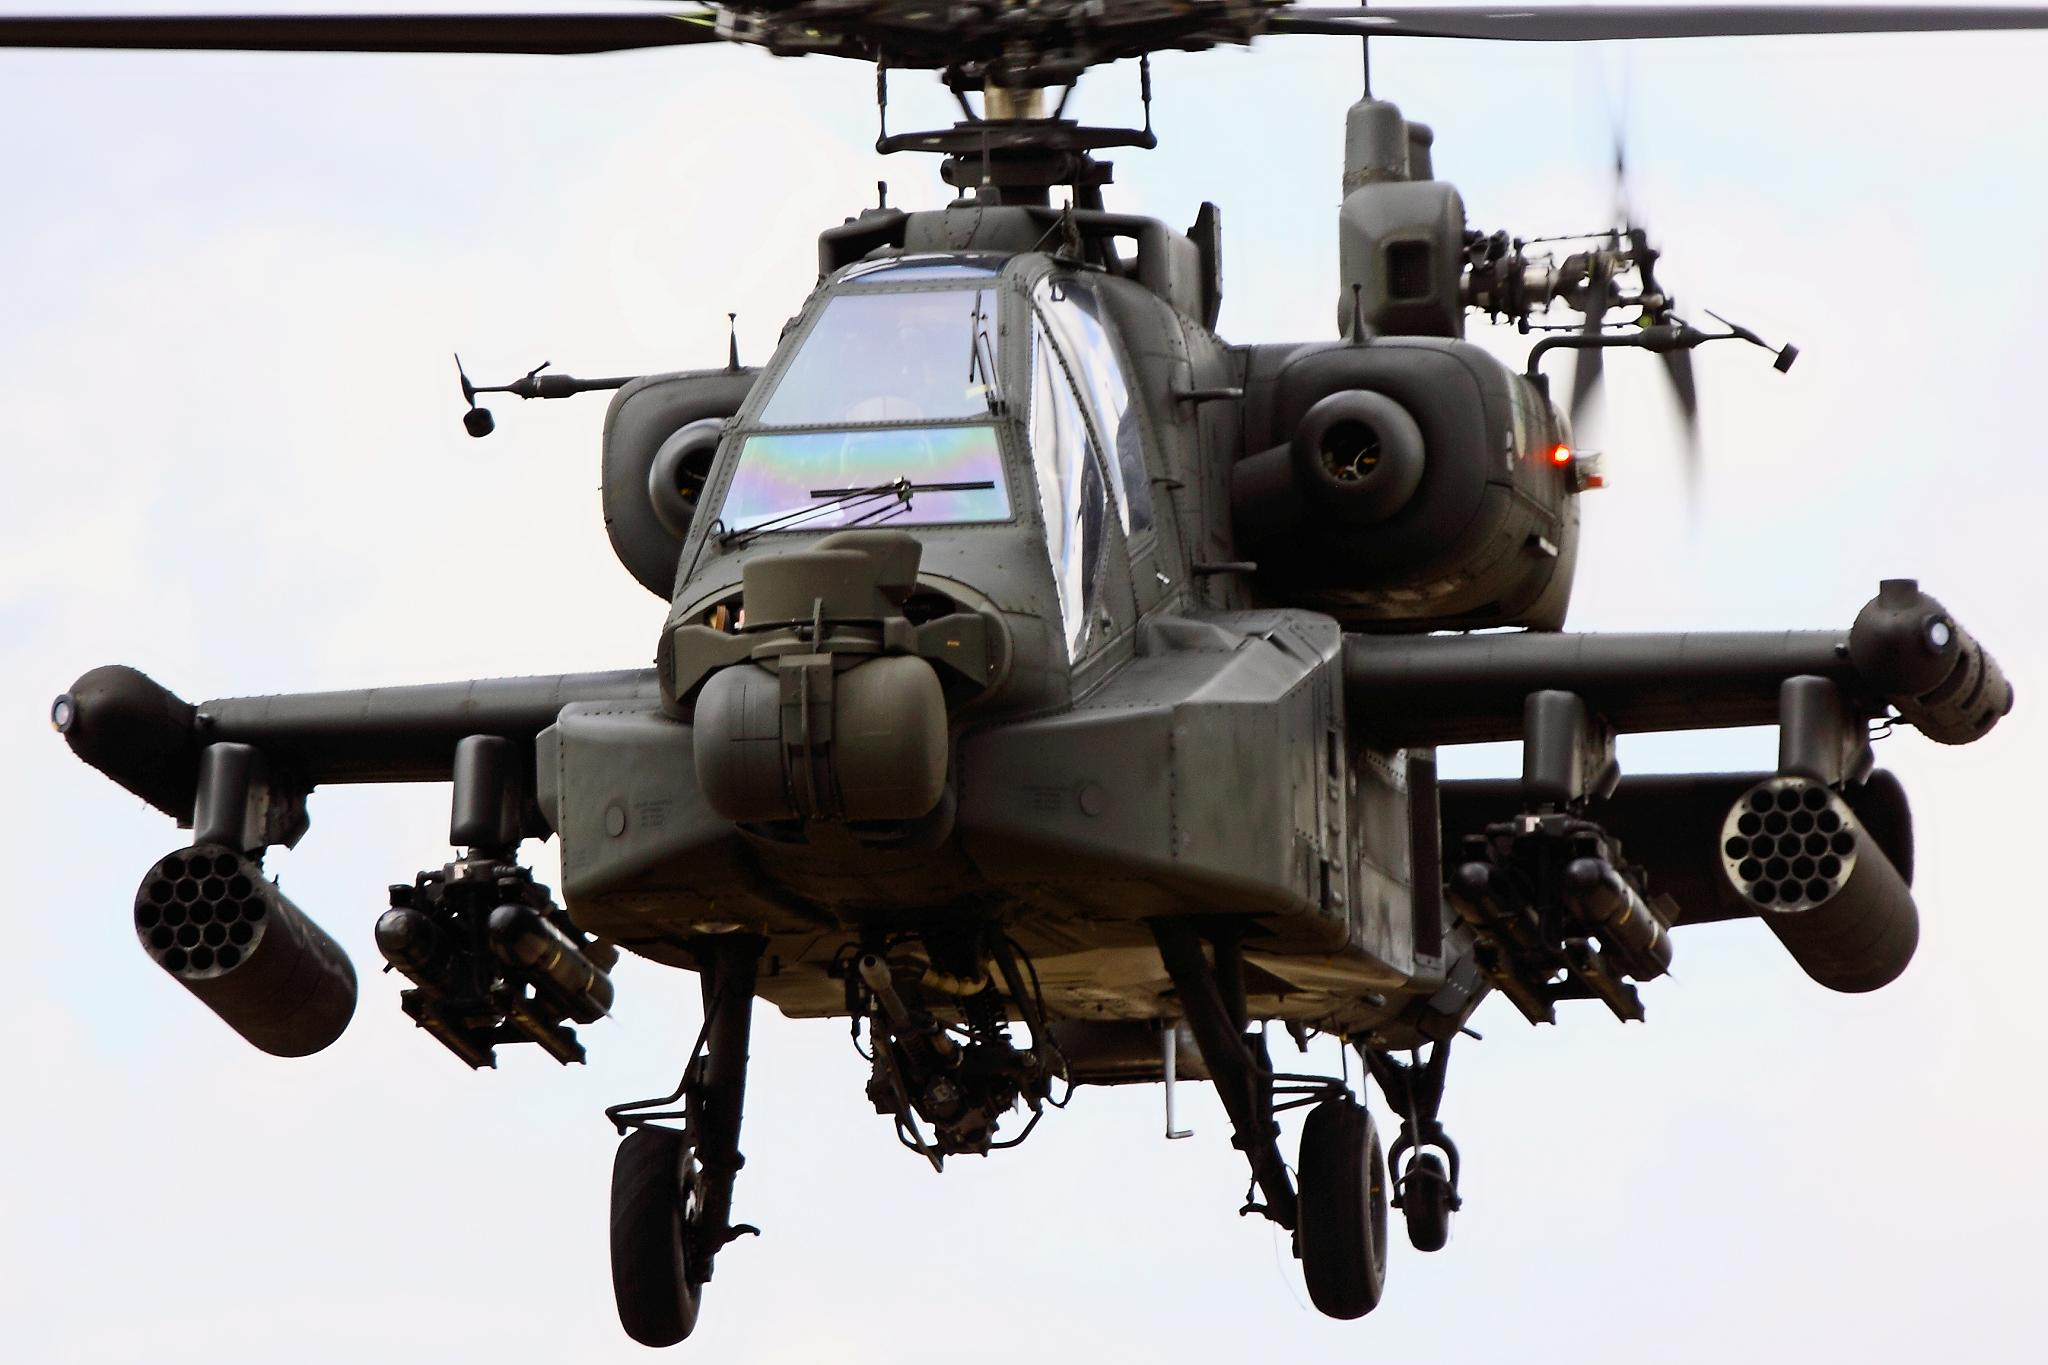 apache helicopter wikipedia with File Ah64 Apache   Riat 2010  4983540511 on File AH64 Apache   RIAT 2010  4983540511 furthermore General Electric T700 furthermore Imagenes De Helicoptero Apache furthermore File AH 64A Apache paper model further Apache Tear Obsidian.